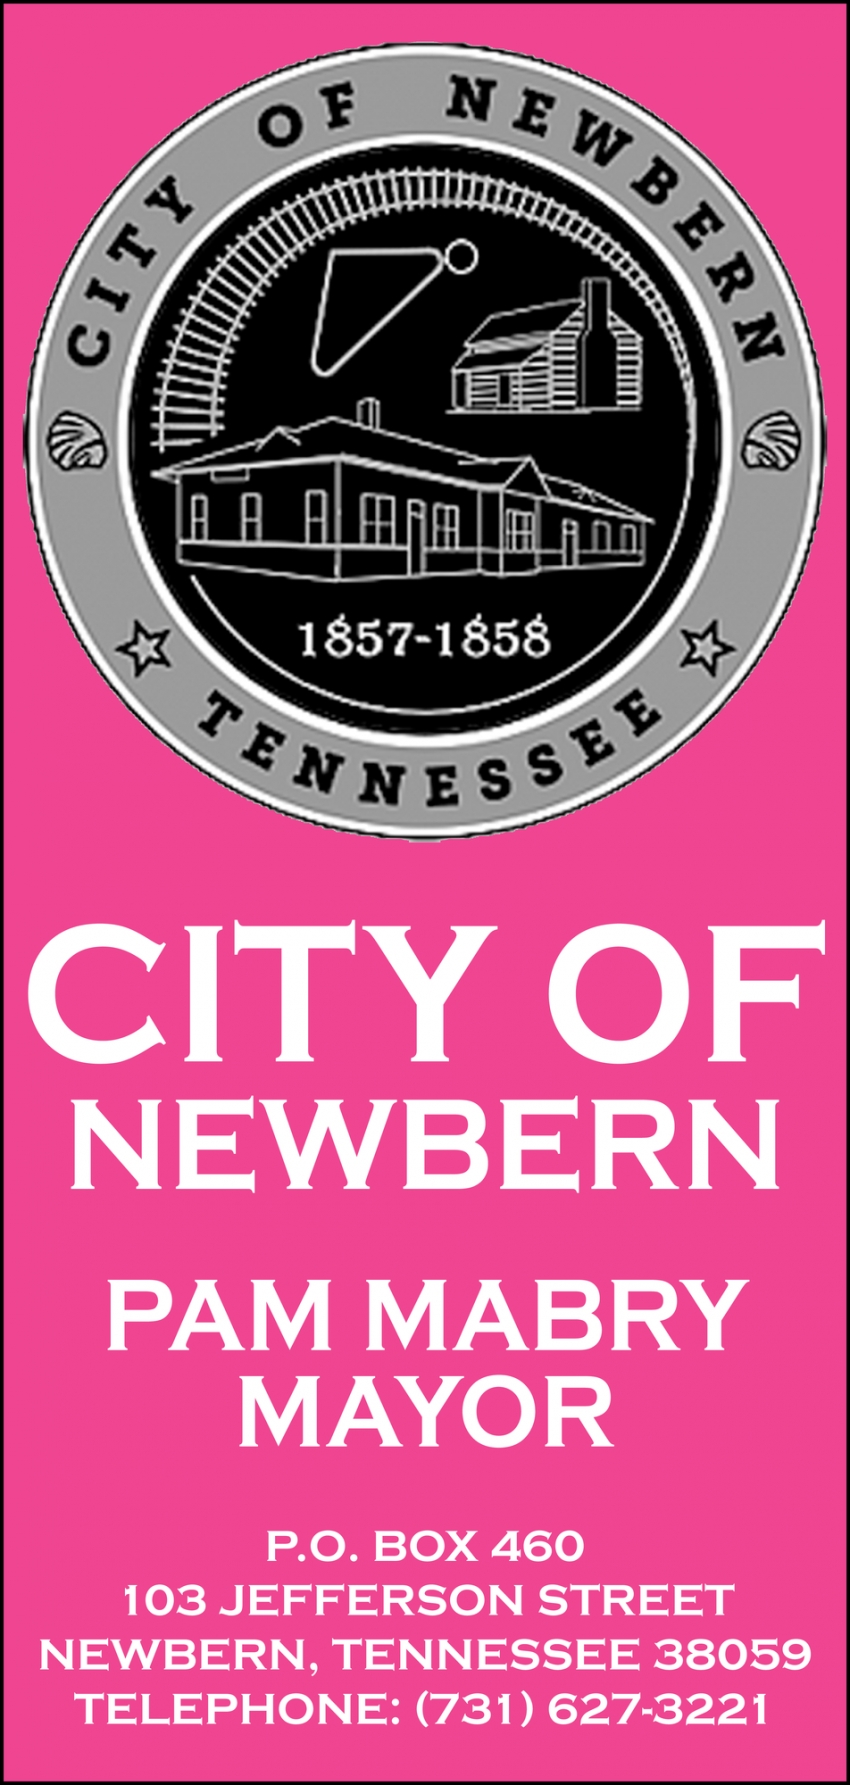 Pam Mabry Mayor